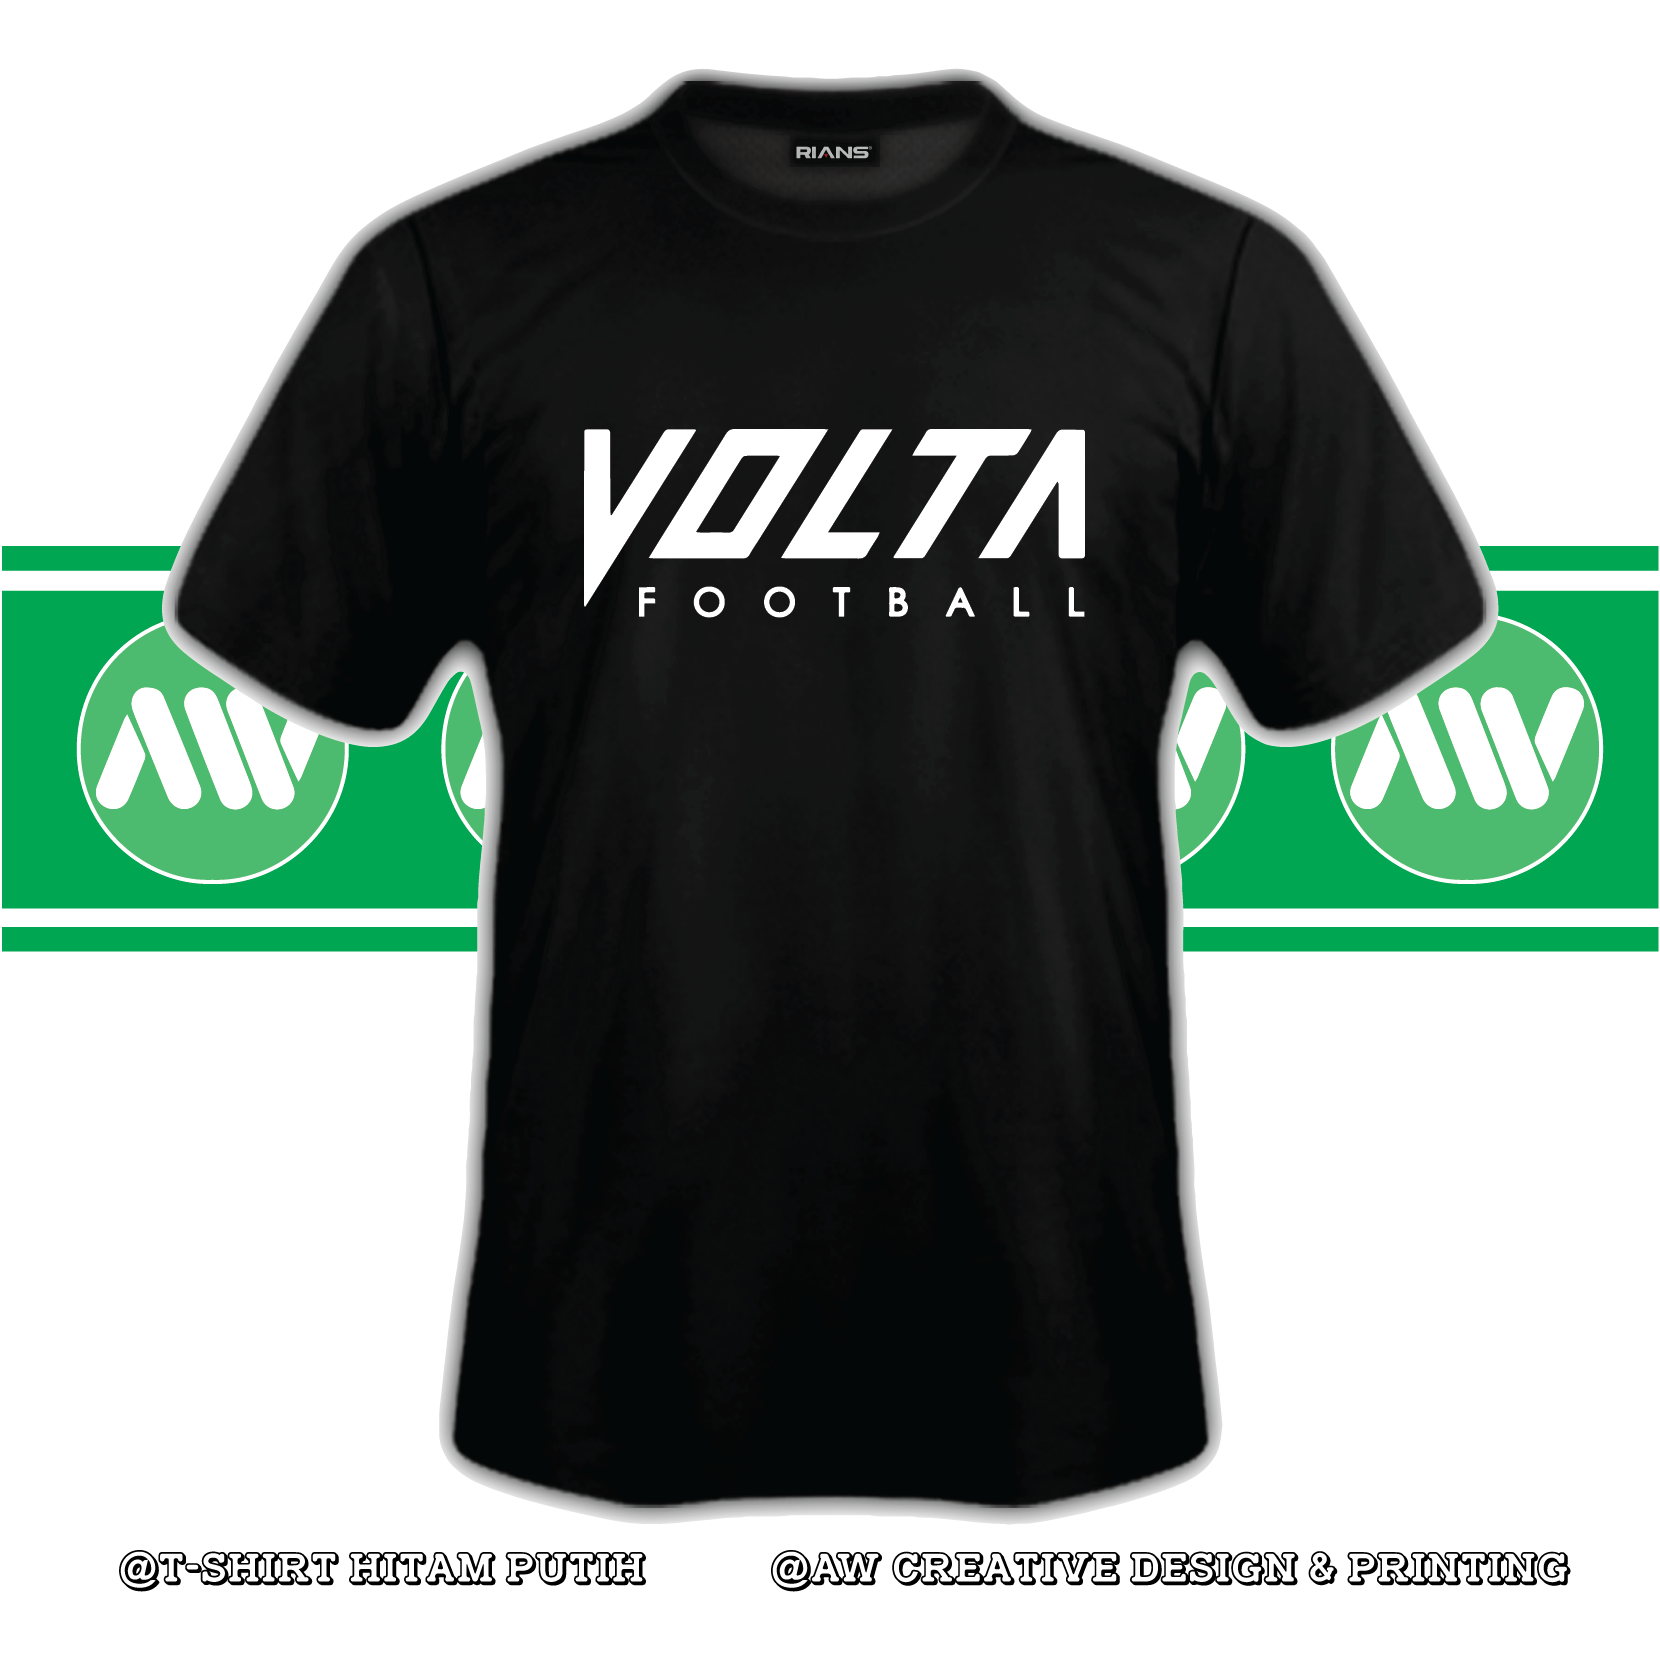 T-Shirt VOLTA Football 100% Cotton Baju Tshirt Black White Hitam Putih Bossku